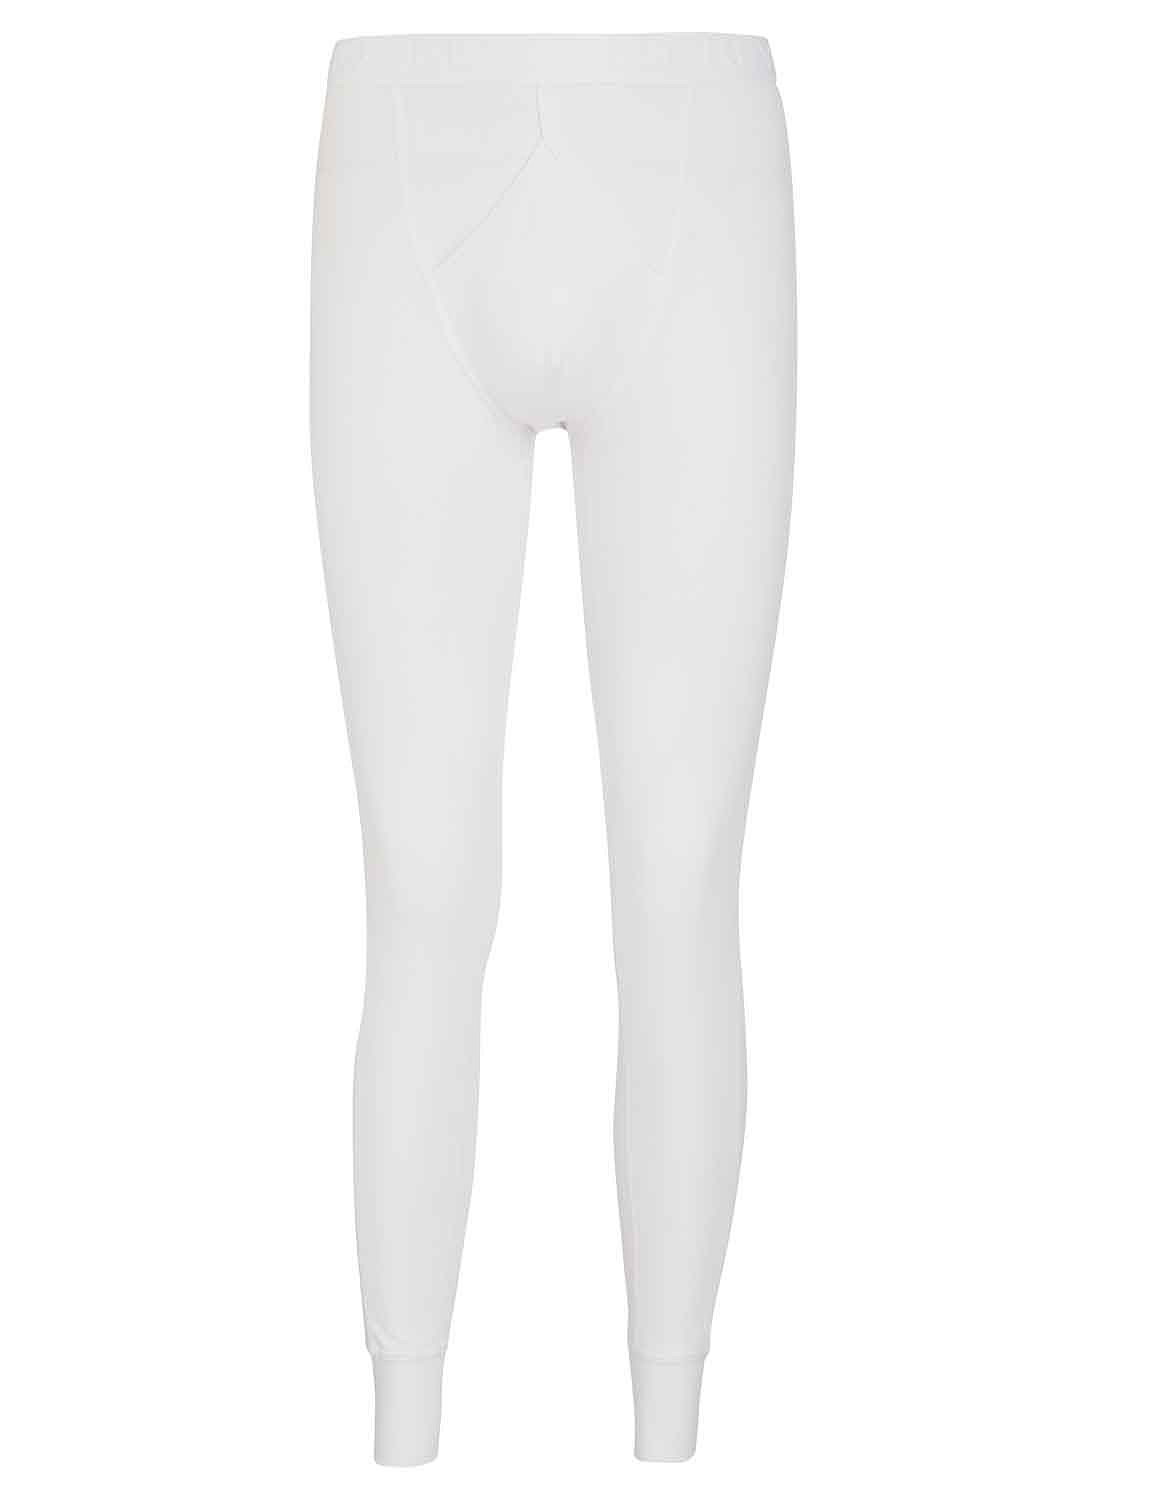 Jockey Thermal Y Front Long - White